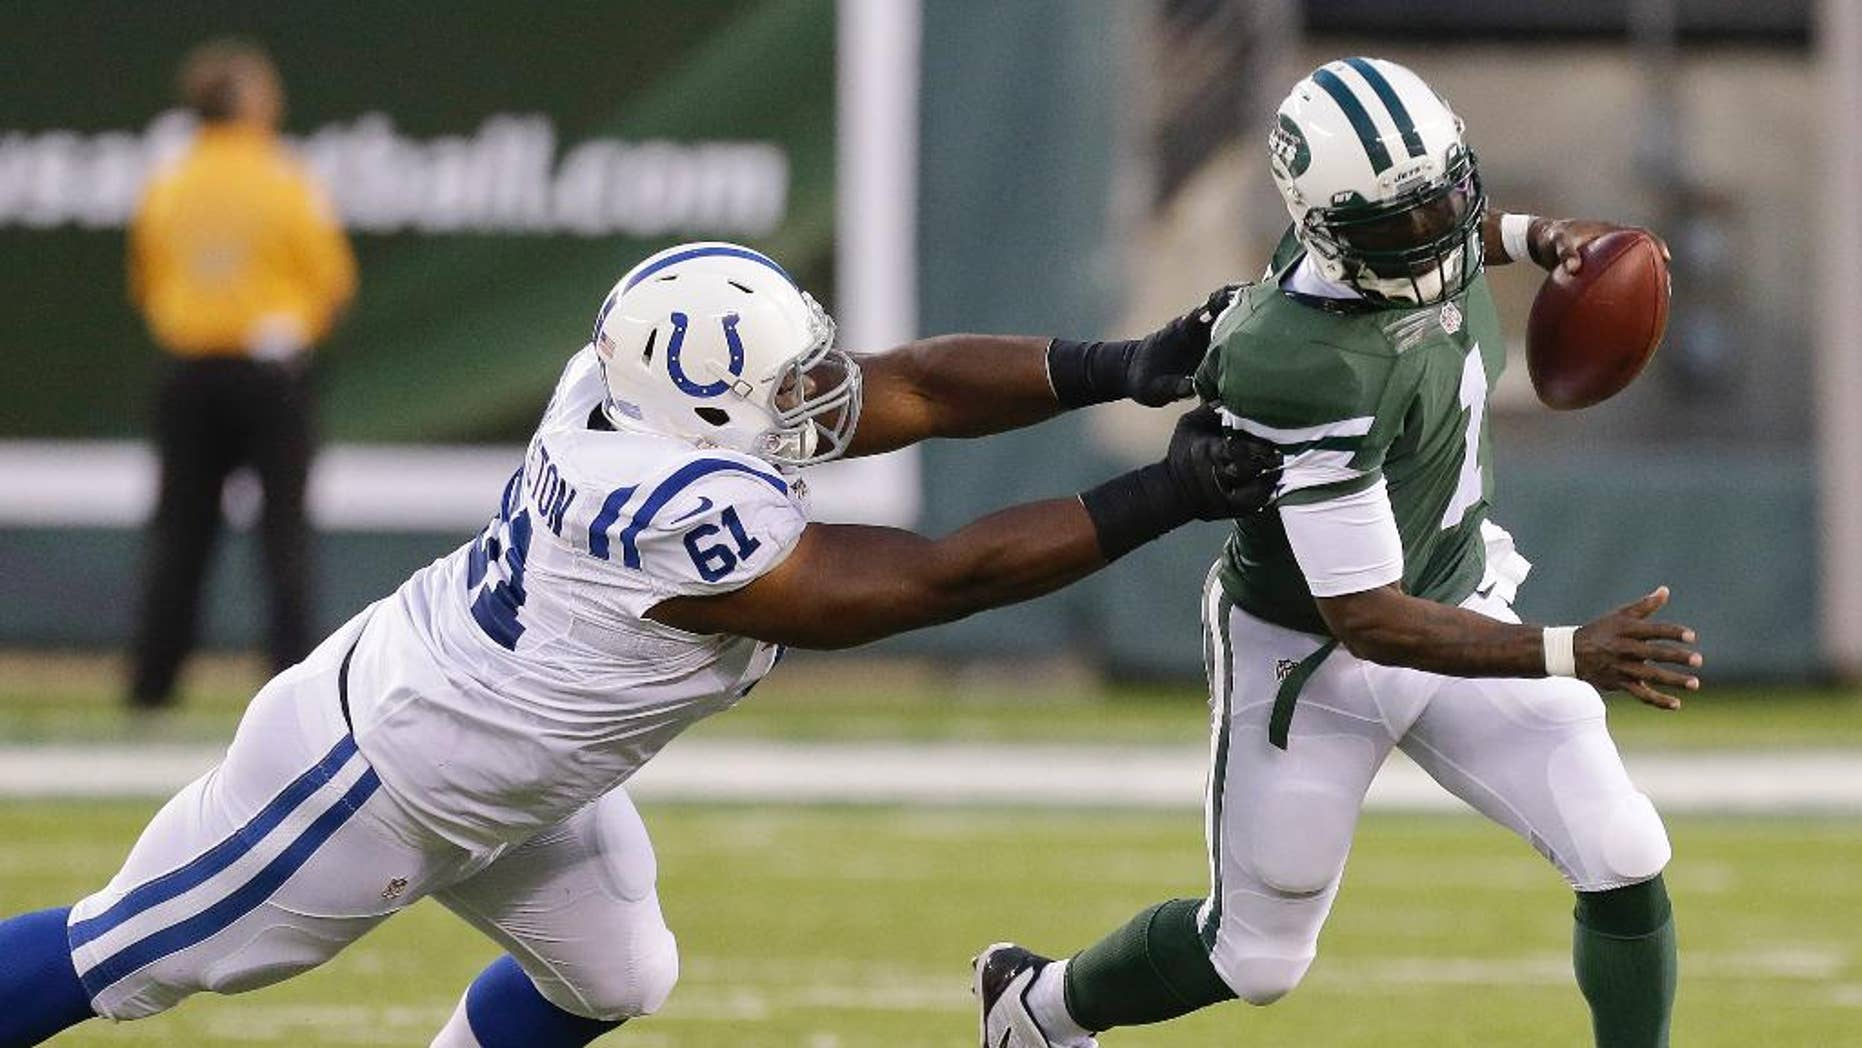 New York Jets quarterback Michael Vick (1) avoids Indianapolis Colts defensive tackle Jeris Pendleton (61) in the second quarter of a preseason NFL football game, Thursday, Aug. 7, 2014, in East Rutherford, N.J. (AP Photo/Frank Franklin II)